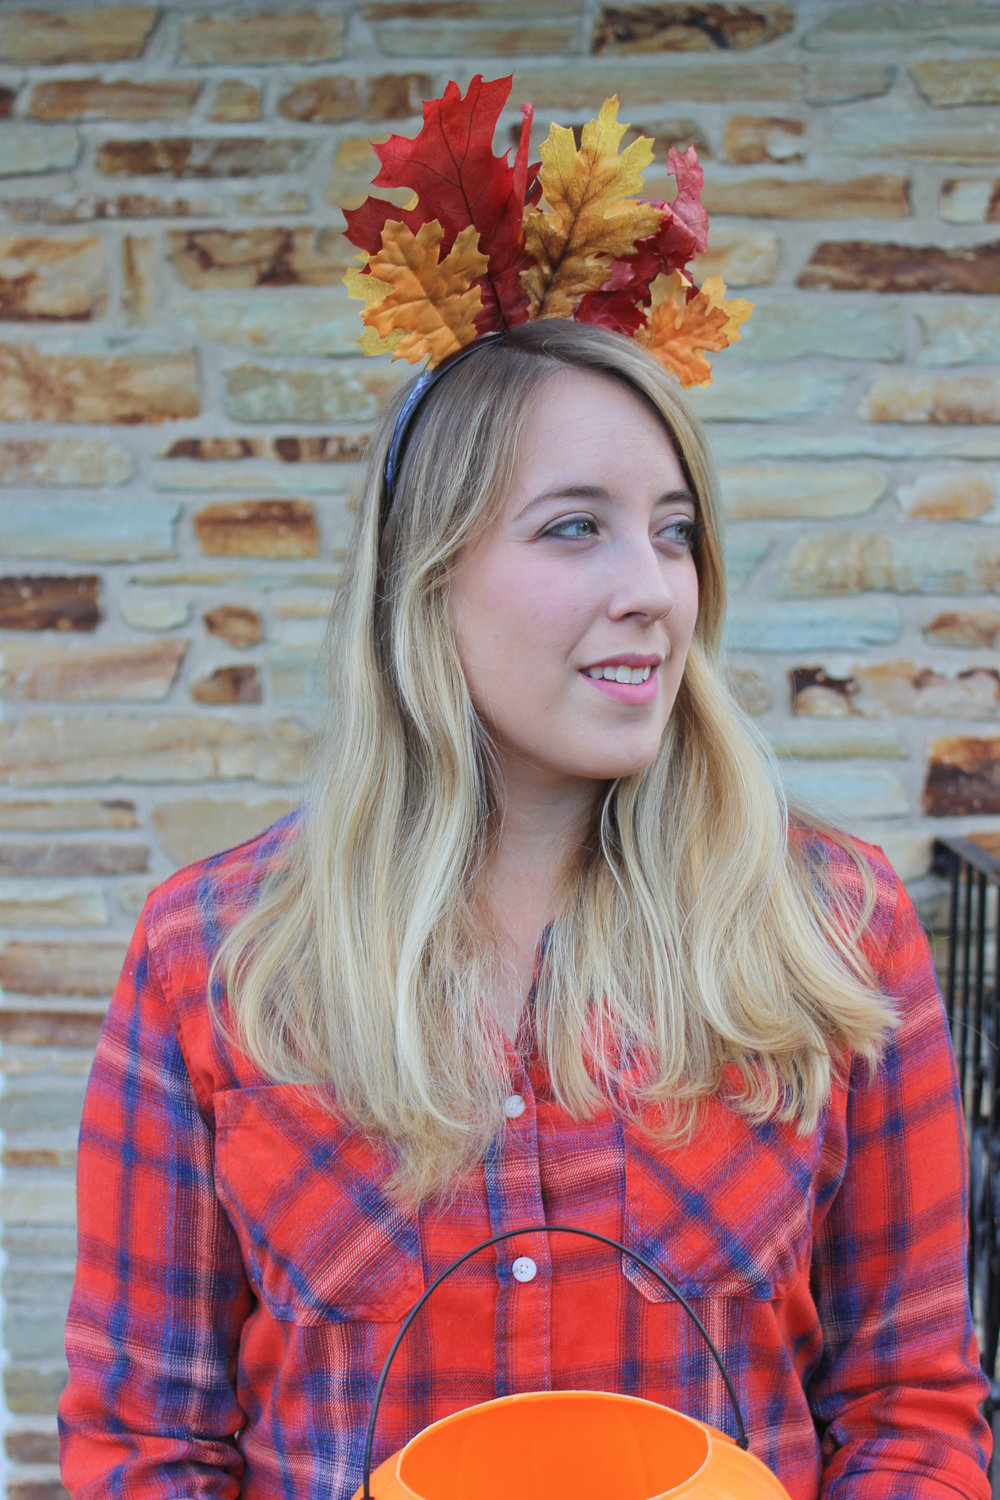 Three Last Minute Effortless DIY Halloween Costumes - Fall Leaf Crown